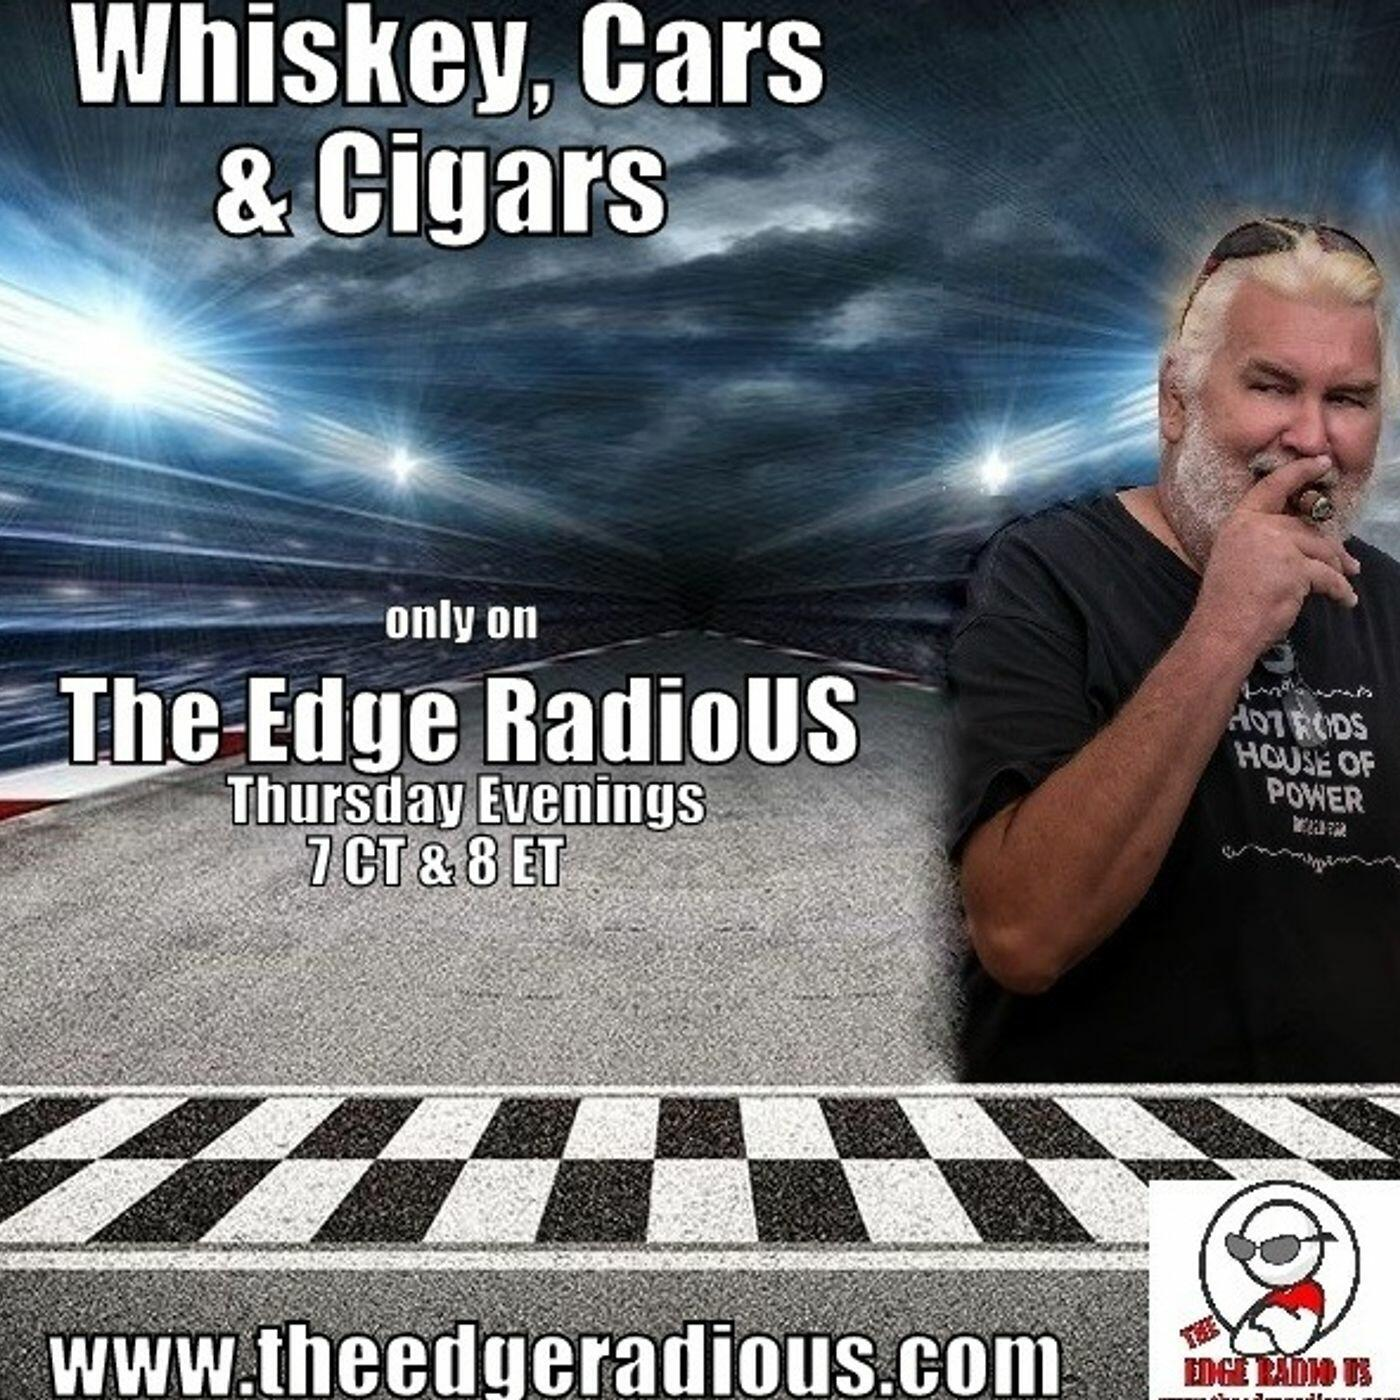 Listen Free to Whiskey Cars & Cigars on iHeartRadio Podcasts | iHeartRadio